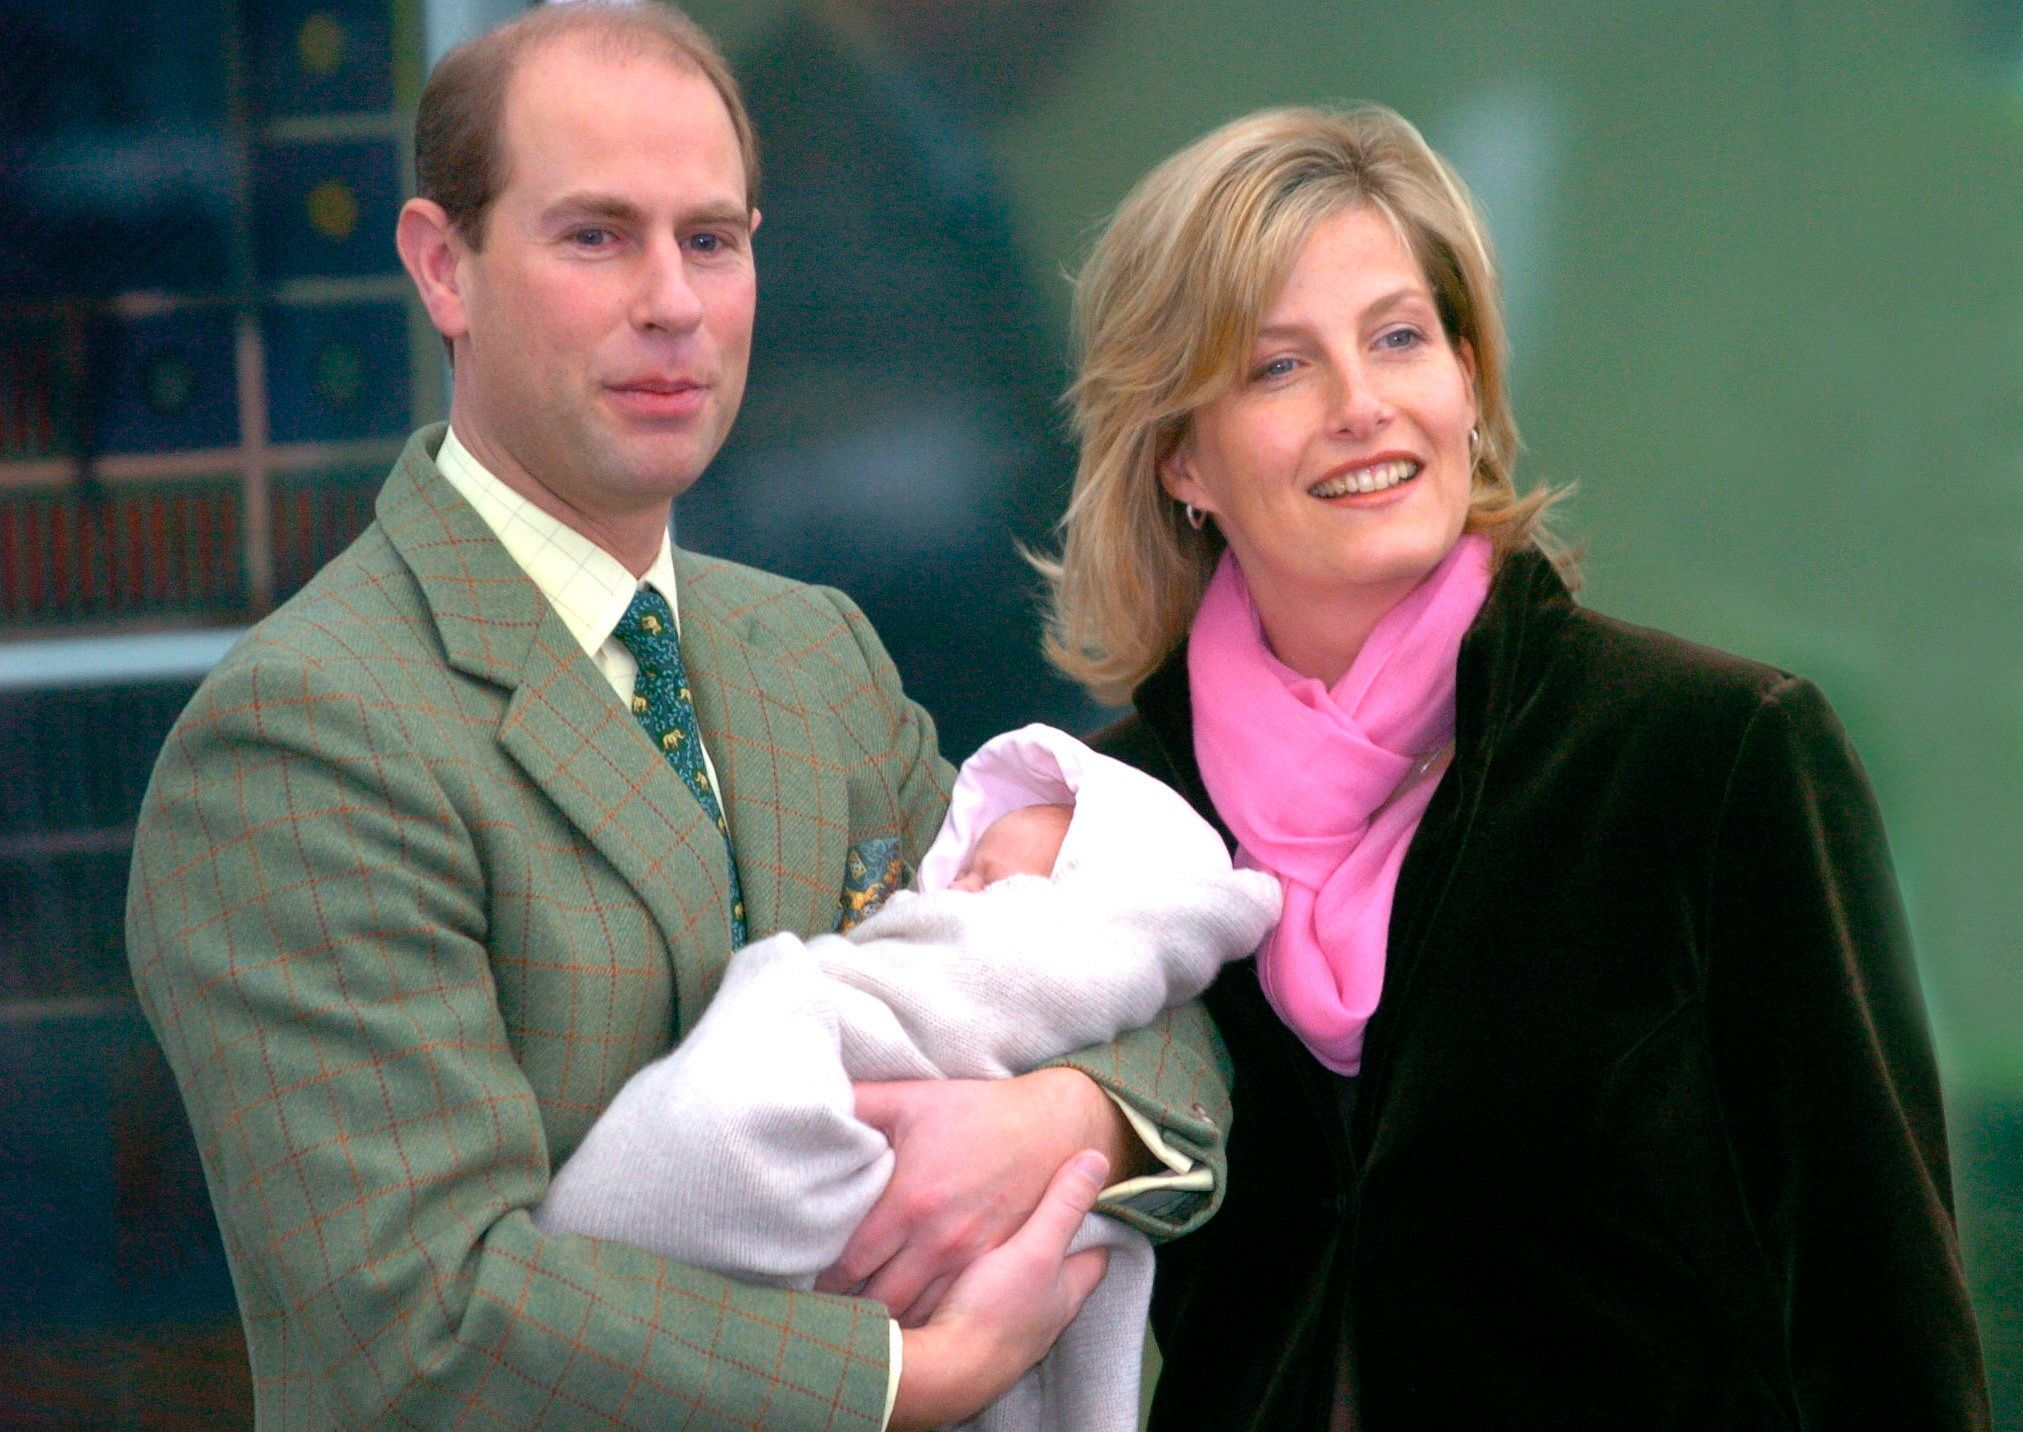 Edward and Sophie,Countess of Wessex, whom he married in 1999, showed off their newborn daughter, Lady Louise Windsor,